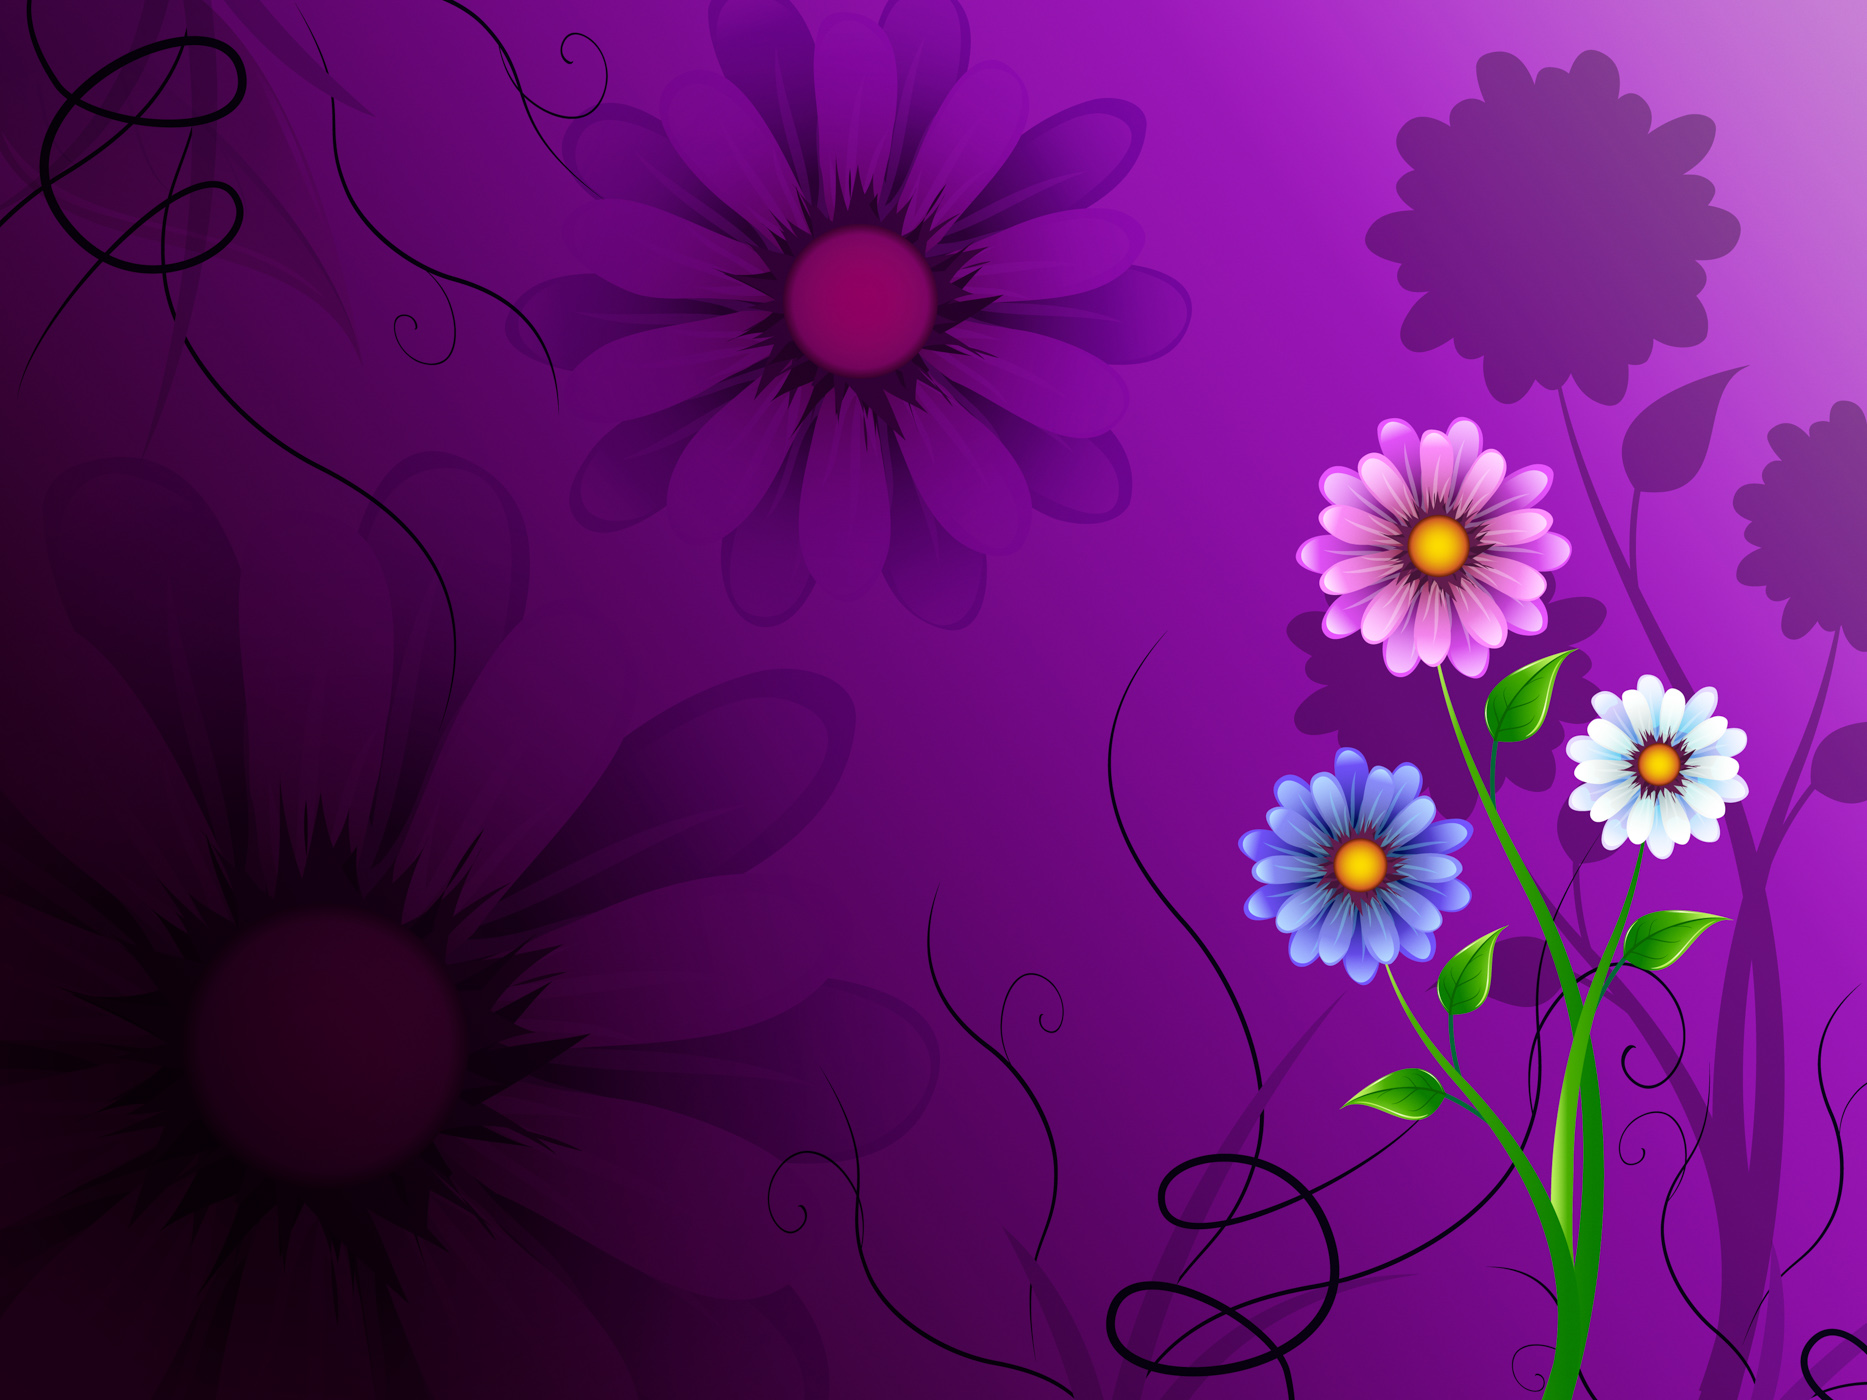 Flowers background shows blooming growing and nature photo